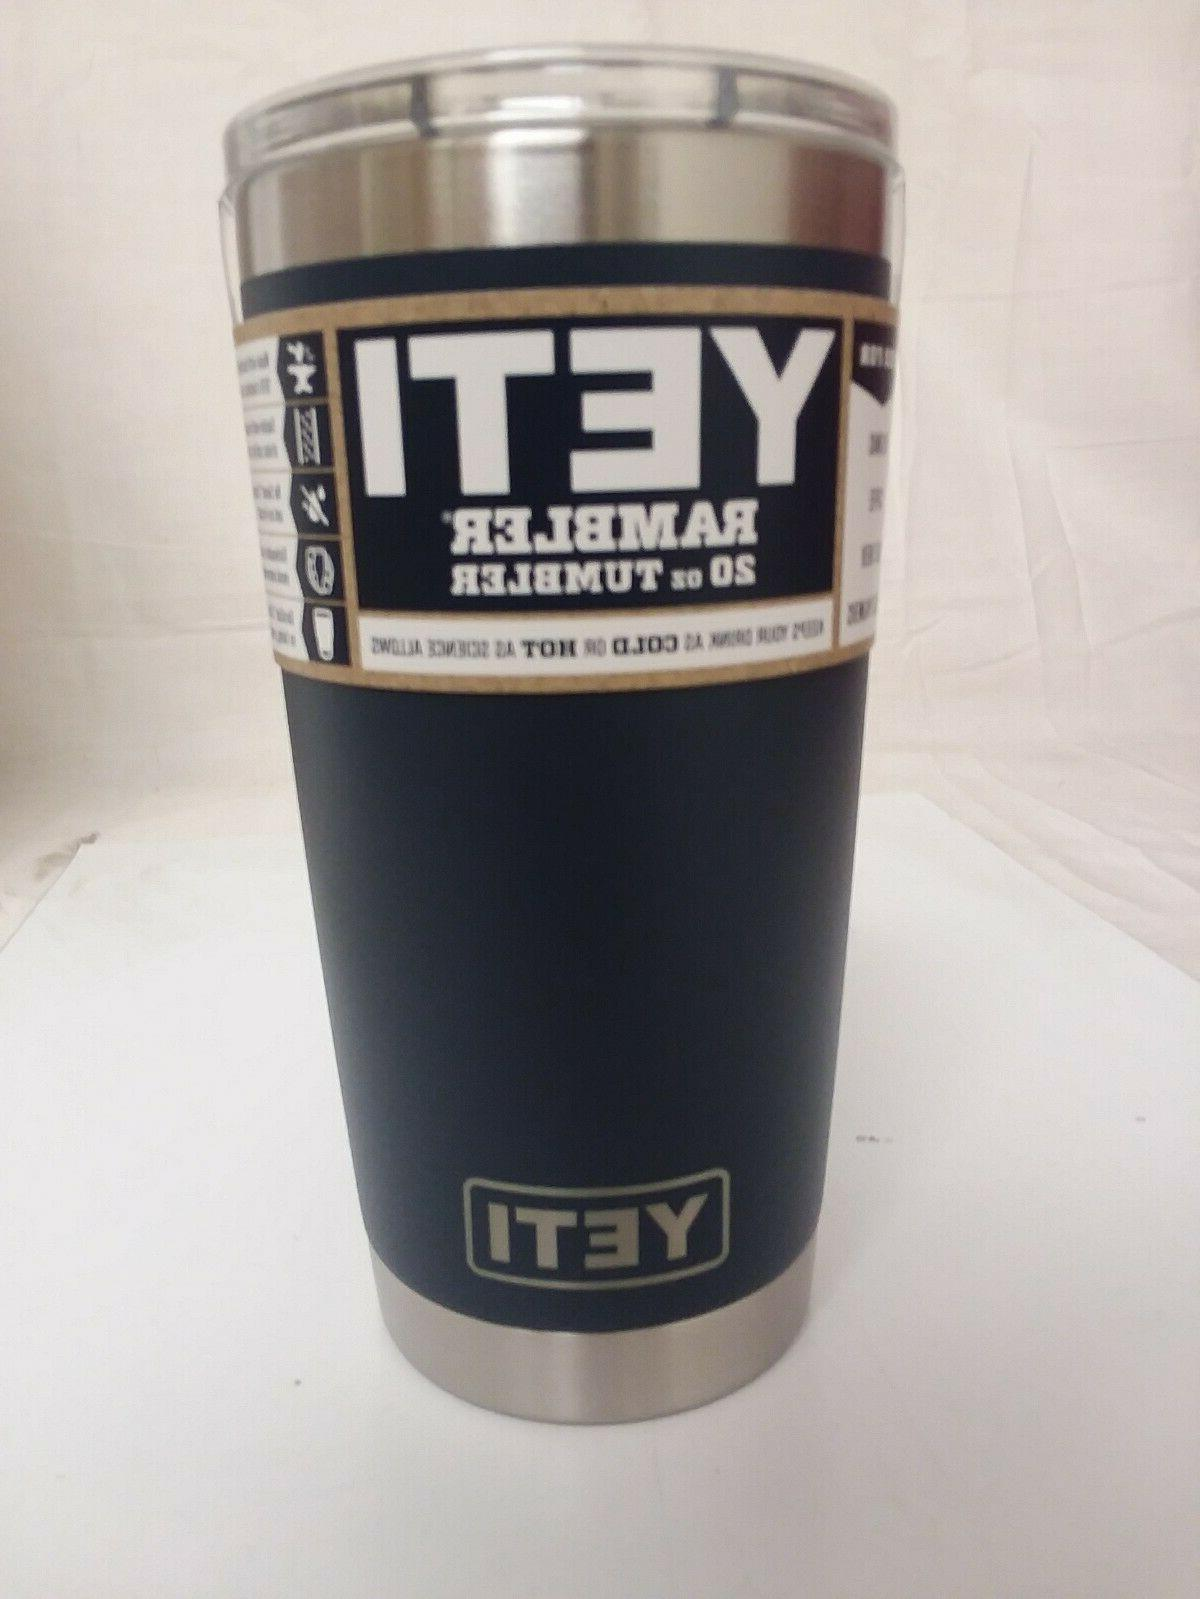 authentic 20oz tumbler navy stainless steel new